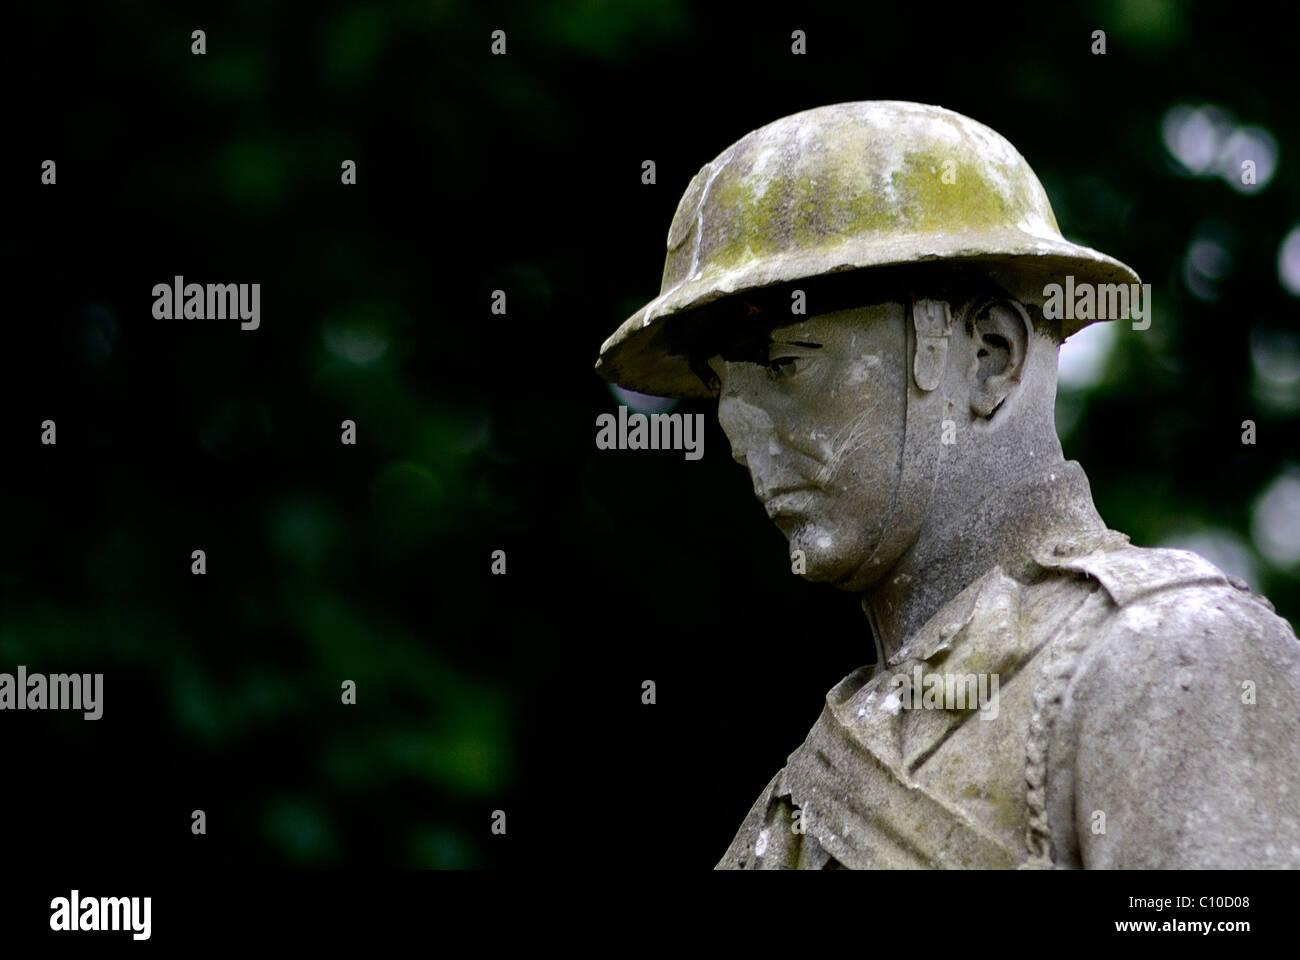 This is a head shot of a life size statue of a WW1 or WW2 soldier which also stands on a war grave in a Sunderland - Stock Image